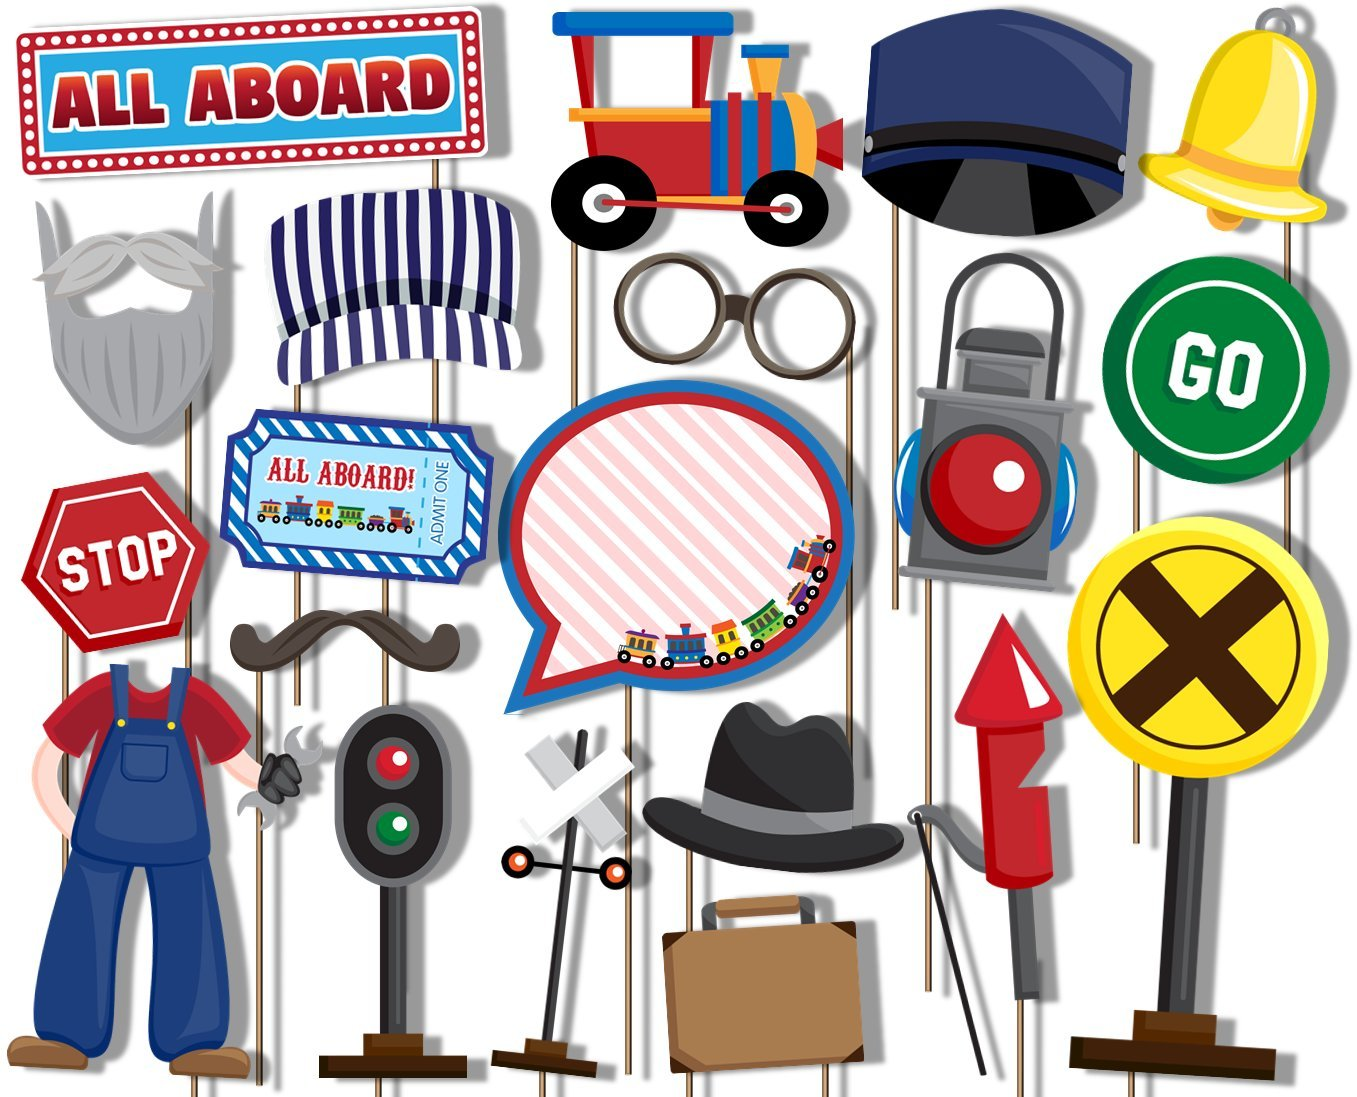 All Aboard! Train Photo Booth Props Kit - 20 Pack Party Camera Props Fully Assembled